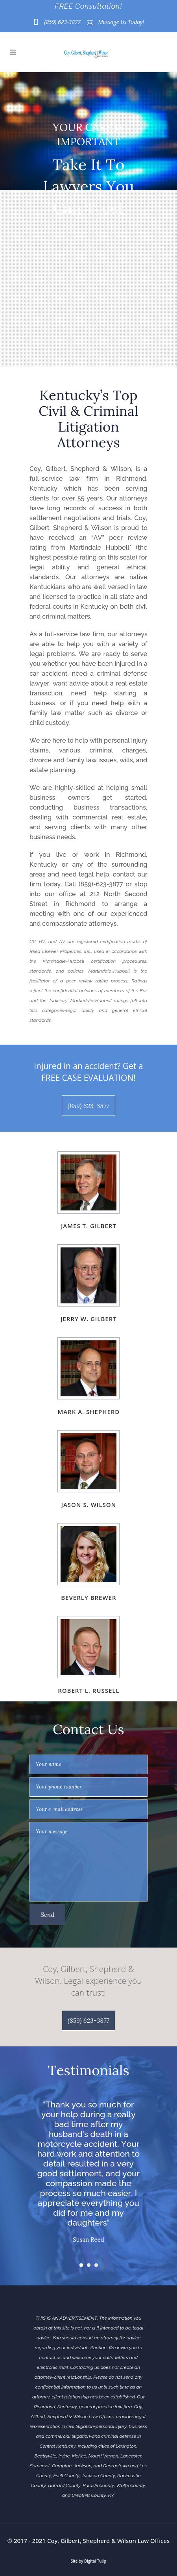 Coy, Gilbert & Gilbert Law Offices | Richmond KY Law | LawyerLand